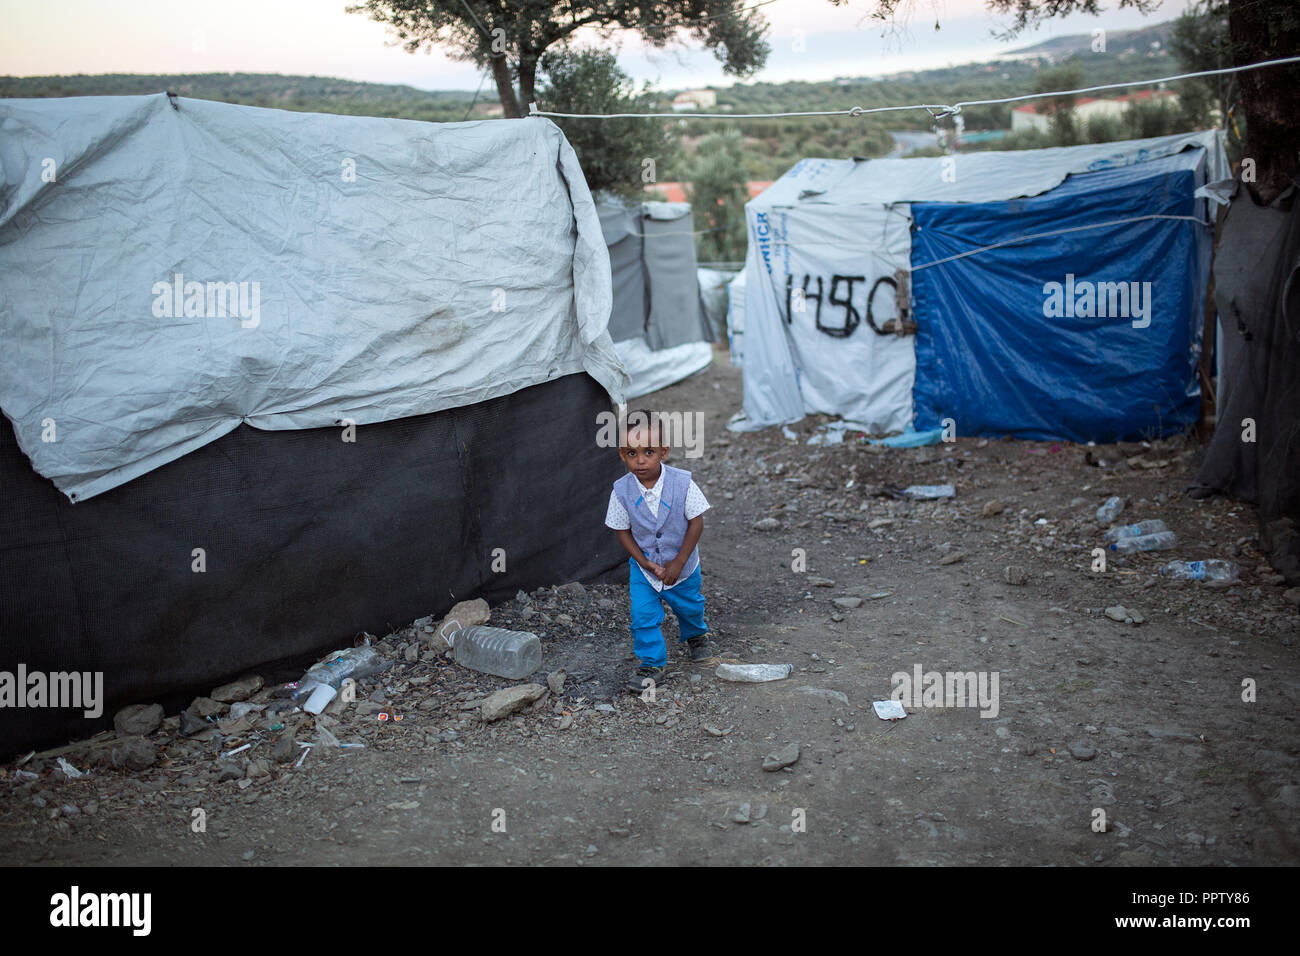 Moira, Greece. 24th Sep, 2018. A child walks between the tents in a temporary camp next to the refugee camp Moria. Credit: Socrates Baltagiannis/dpa/Alamy Live News - Stock Image